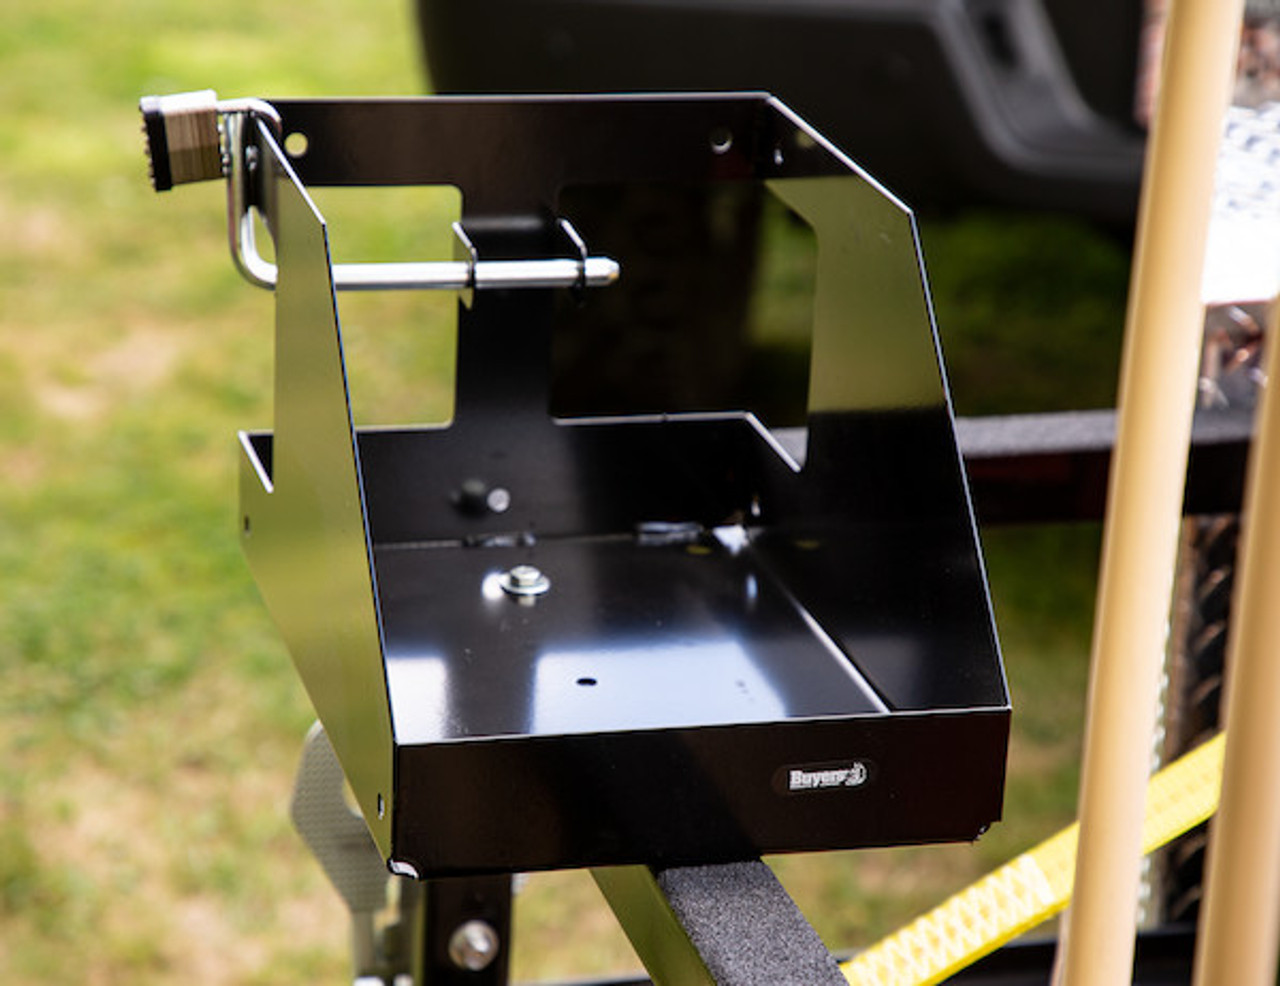 Buyers LT32 Locking Gas Container Rack For Landscaping Trailers, Garages, Sheds, Construction Vehicles Picture # 7